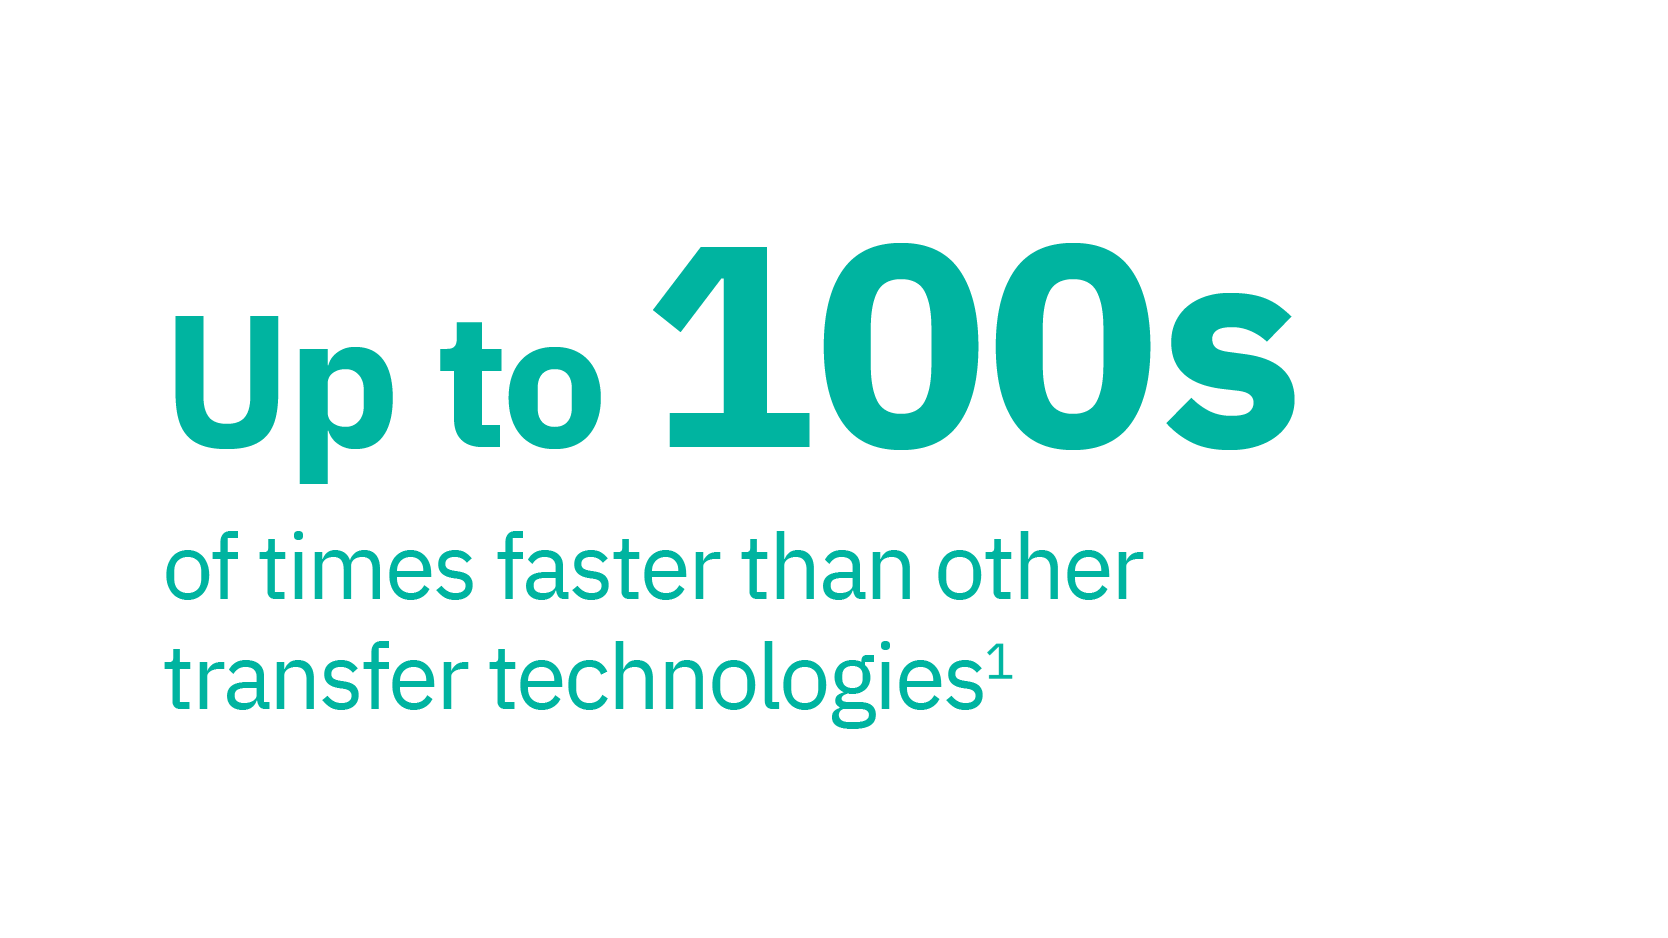 Up to 100s of times faster than other transfer technologies